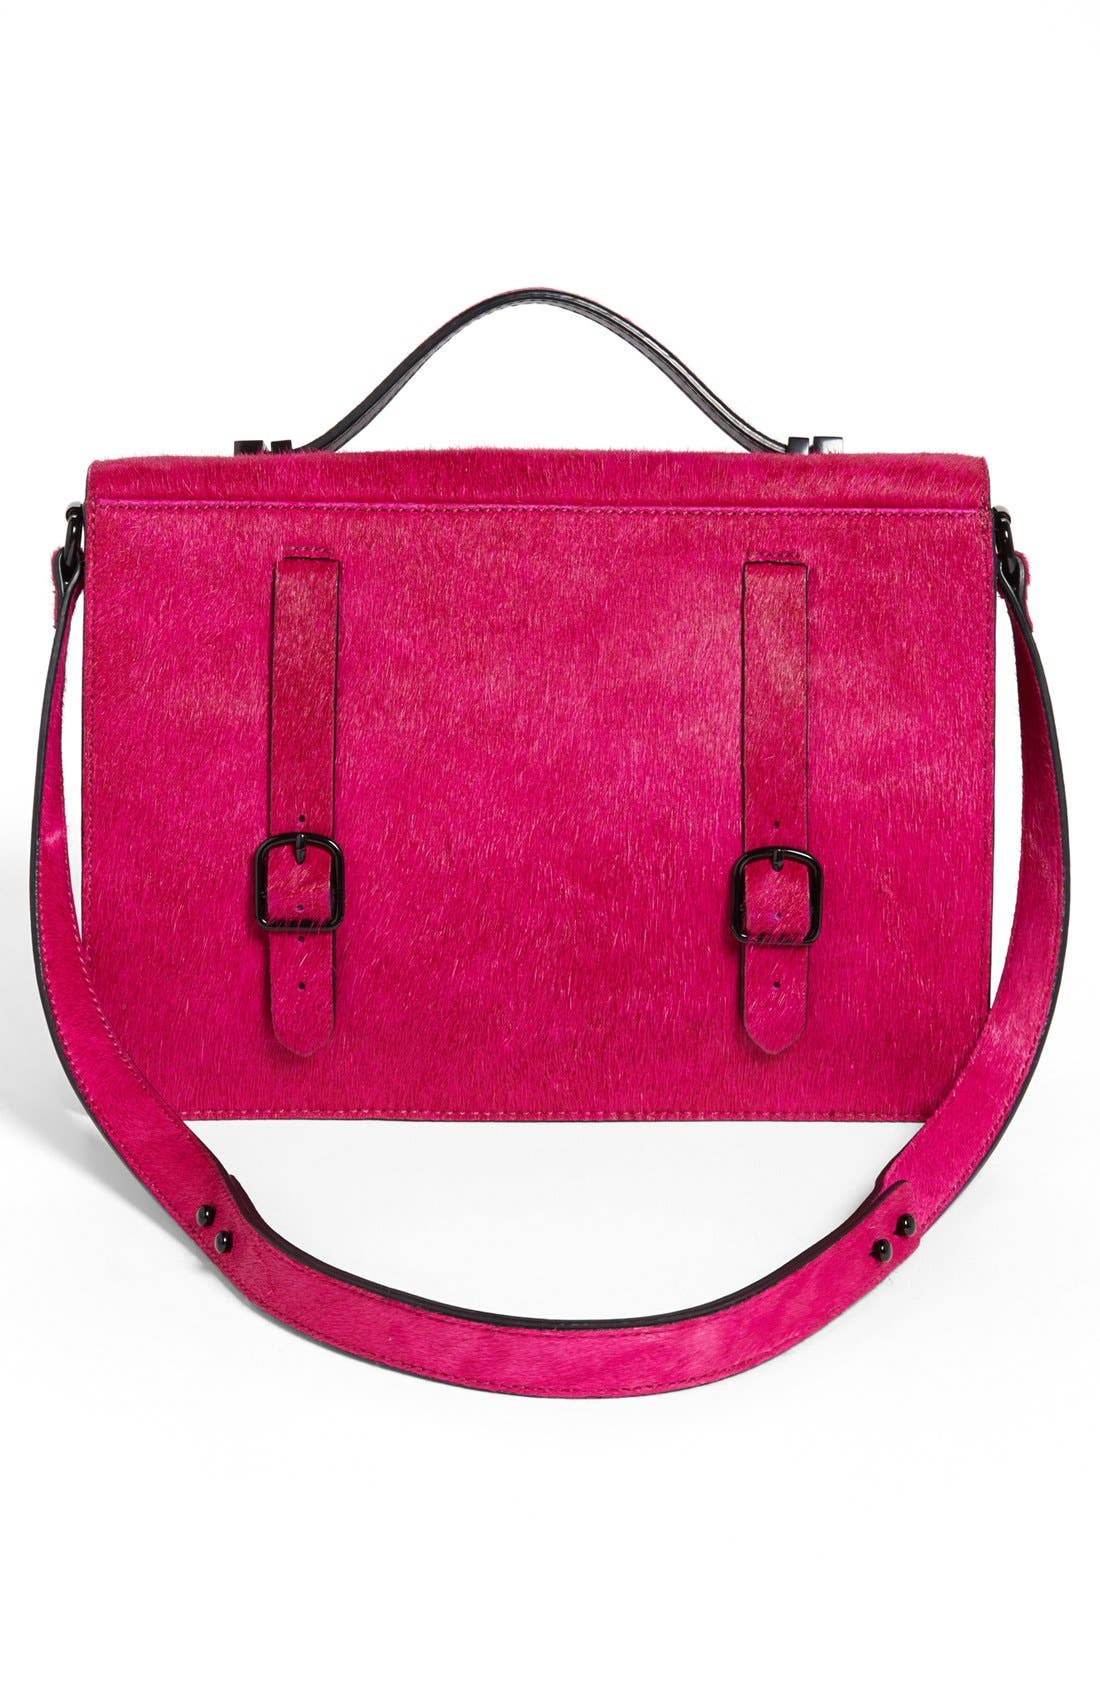 Alternate Image 3  - Loeffler Randall 'Rider' Calf Hair & Leather Satchel, Medium